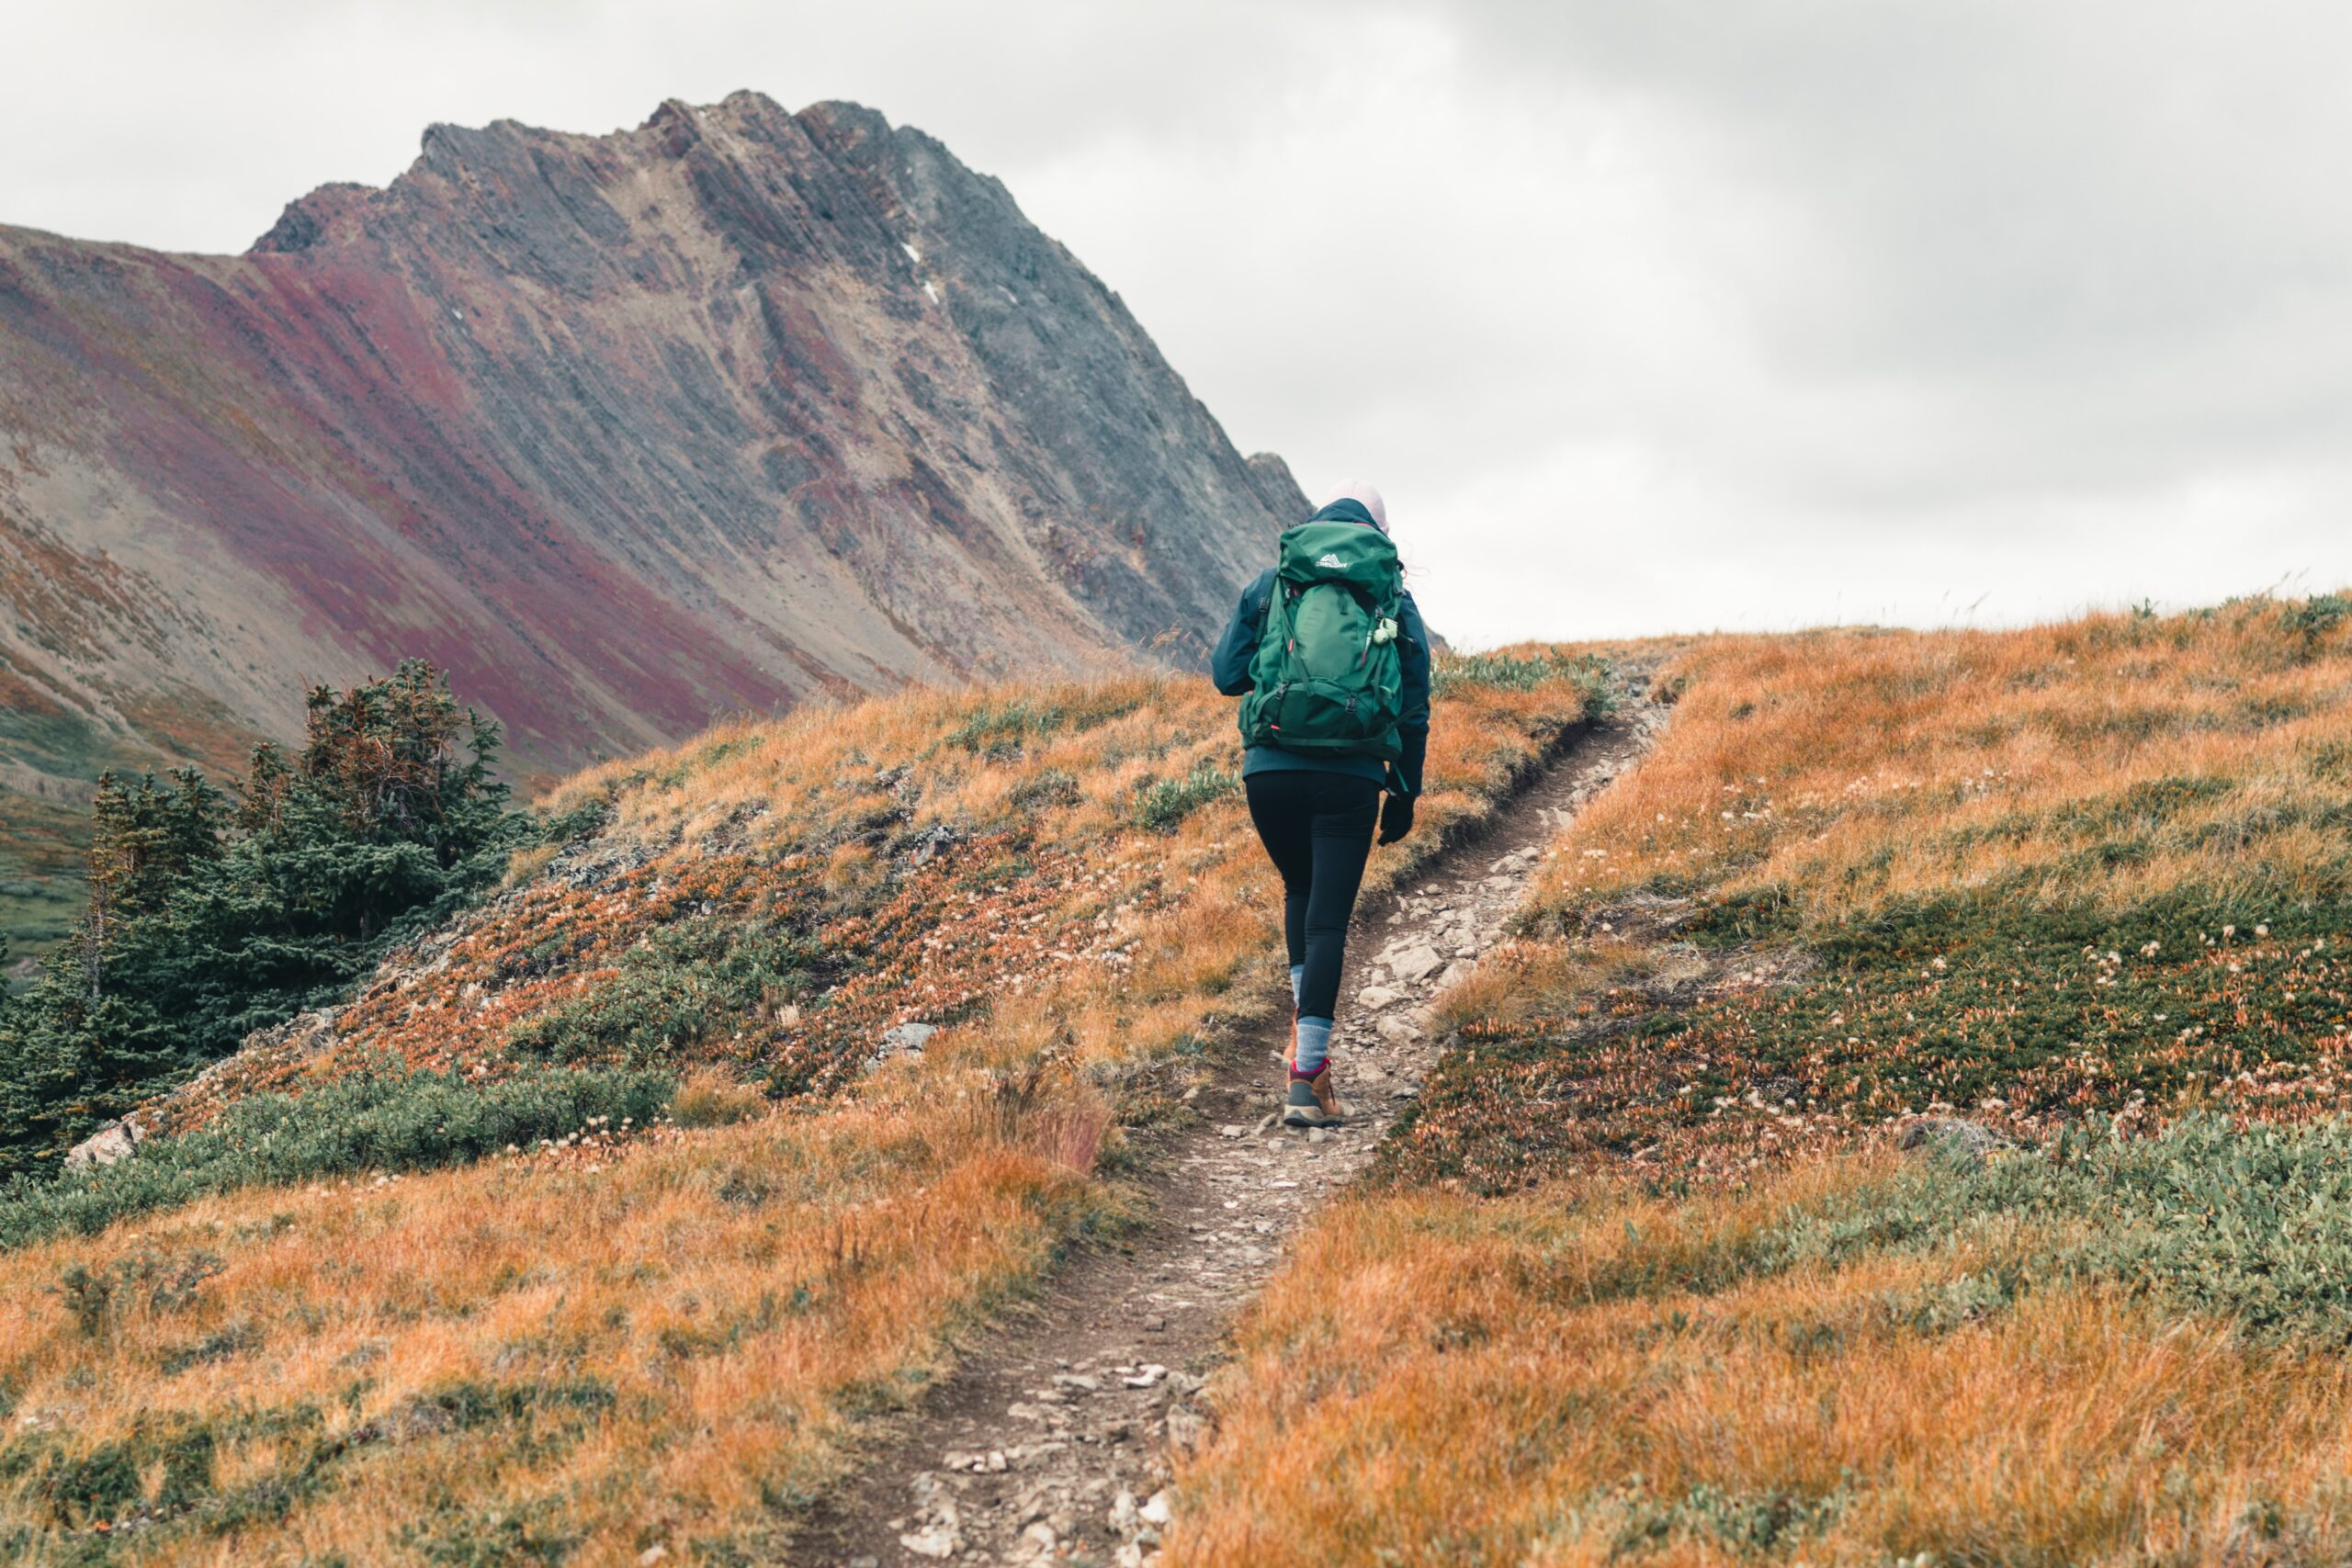 Woman Hiking near Mountain with hiking boots